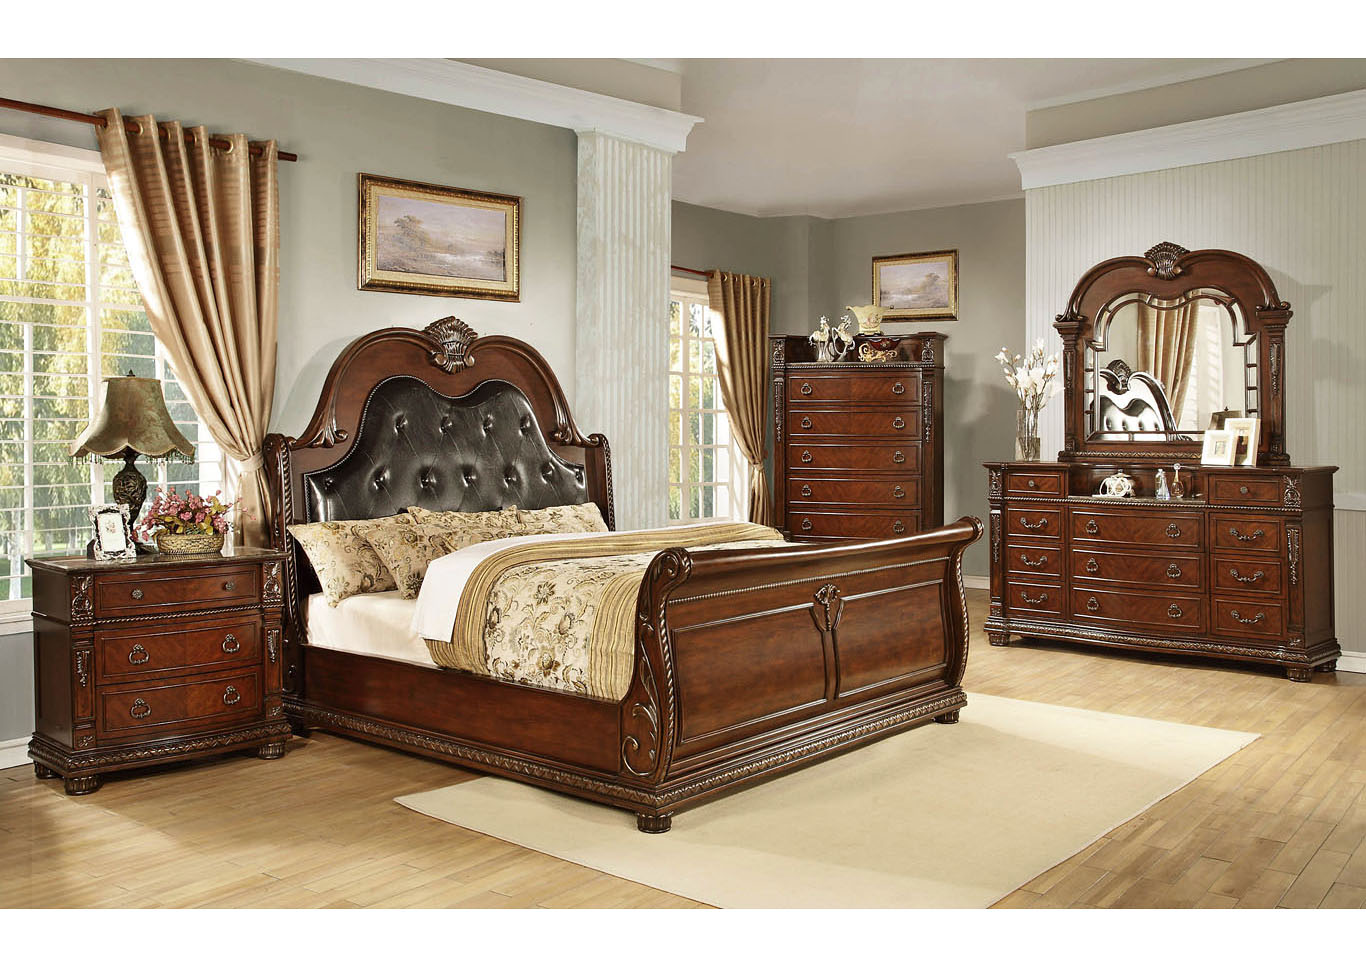 Lakeleigh Brown Sleigh Queen 4 Piece Bedroom Set W/ Chest, Dresser & Mirror,Global Trading